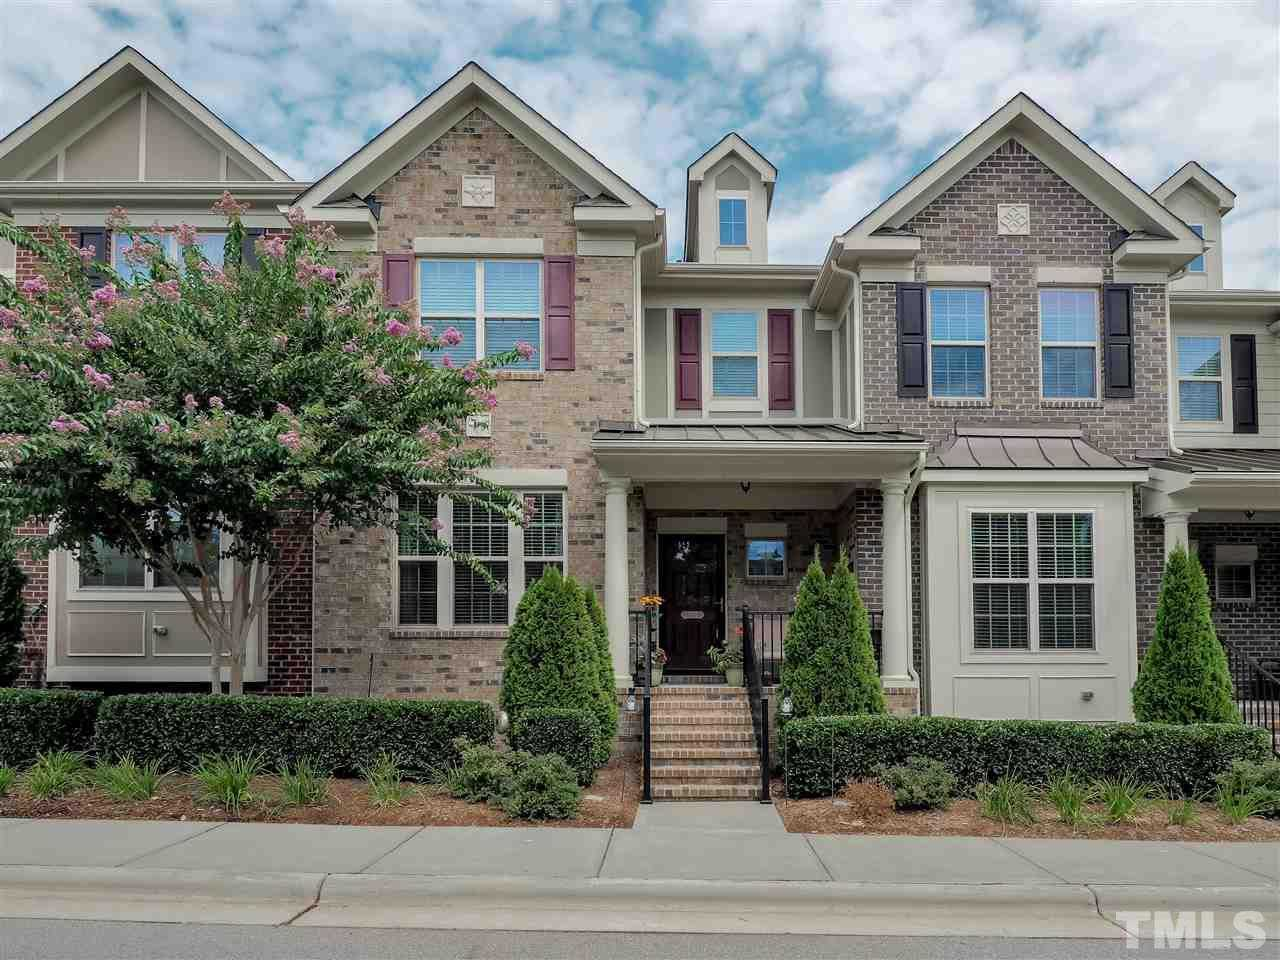 $345,000 - 4Br/4Ba -  for Sale in Enclave At Stone Creek Village, Cary